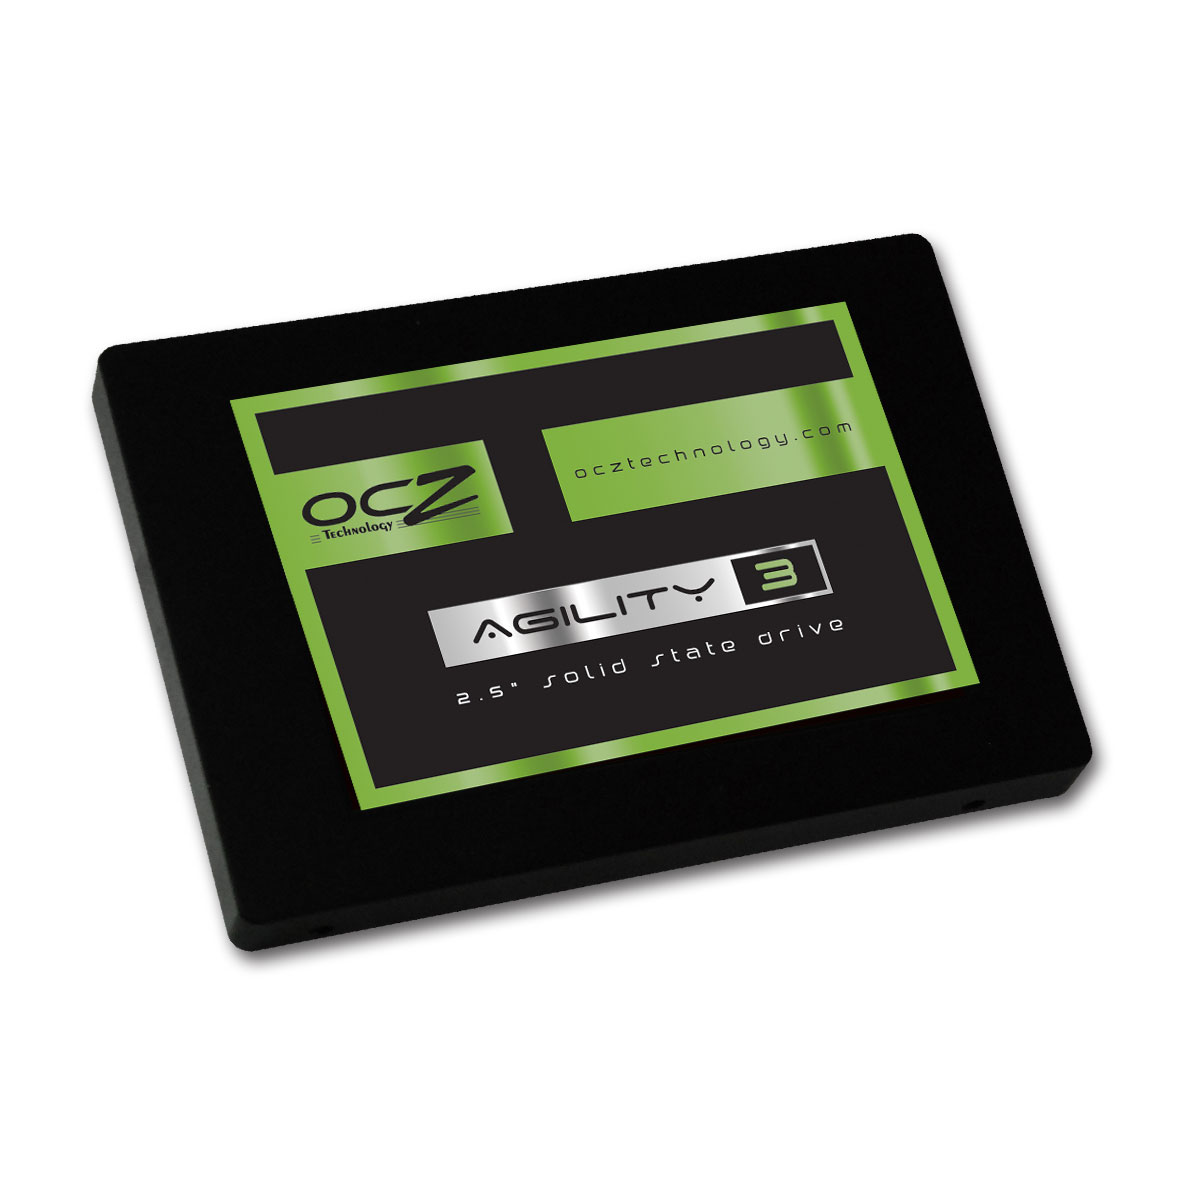 ocz agility 3 series 120 go disque ssd ocz storage solutions sur. Black Bedroom Furniture Sets. Home Design Ideas